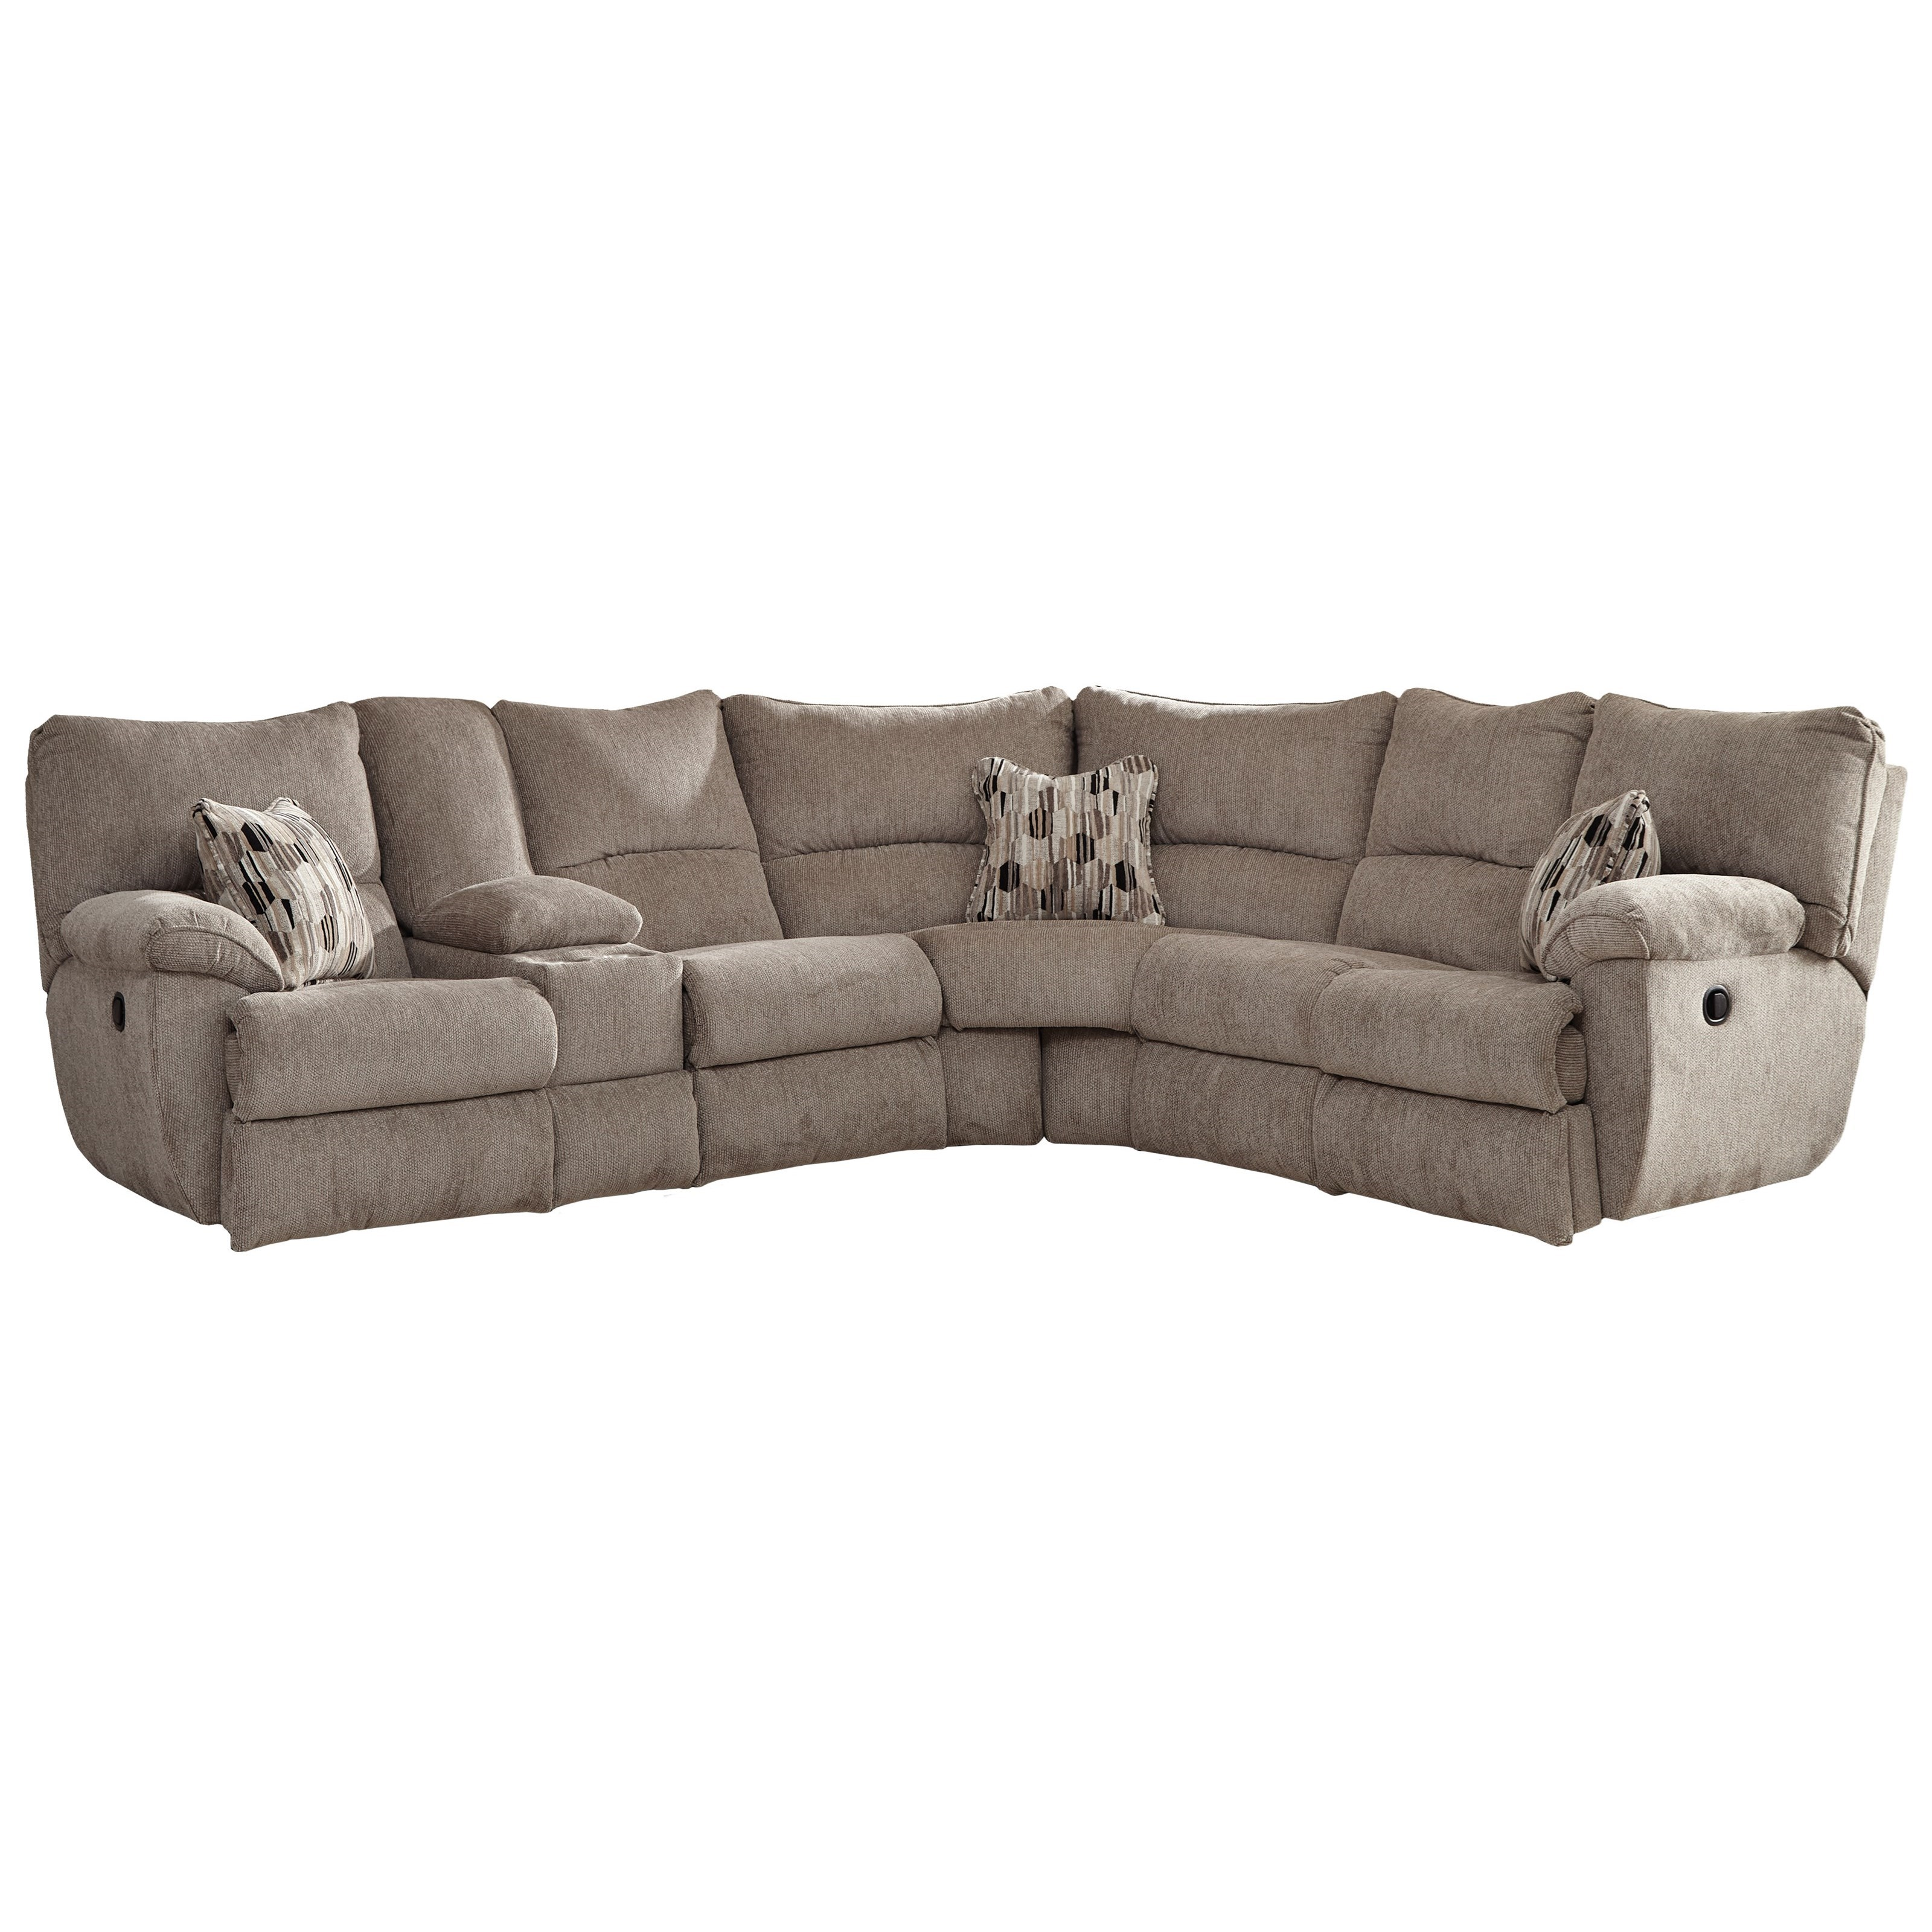 Catnapper Elliott Lay Flat Sectional Sofa With Storage Console